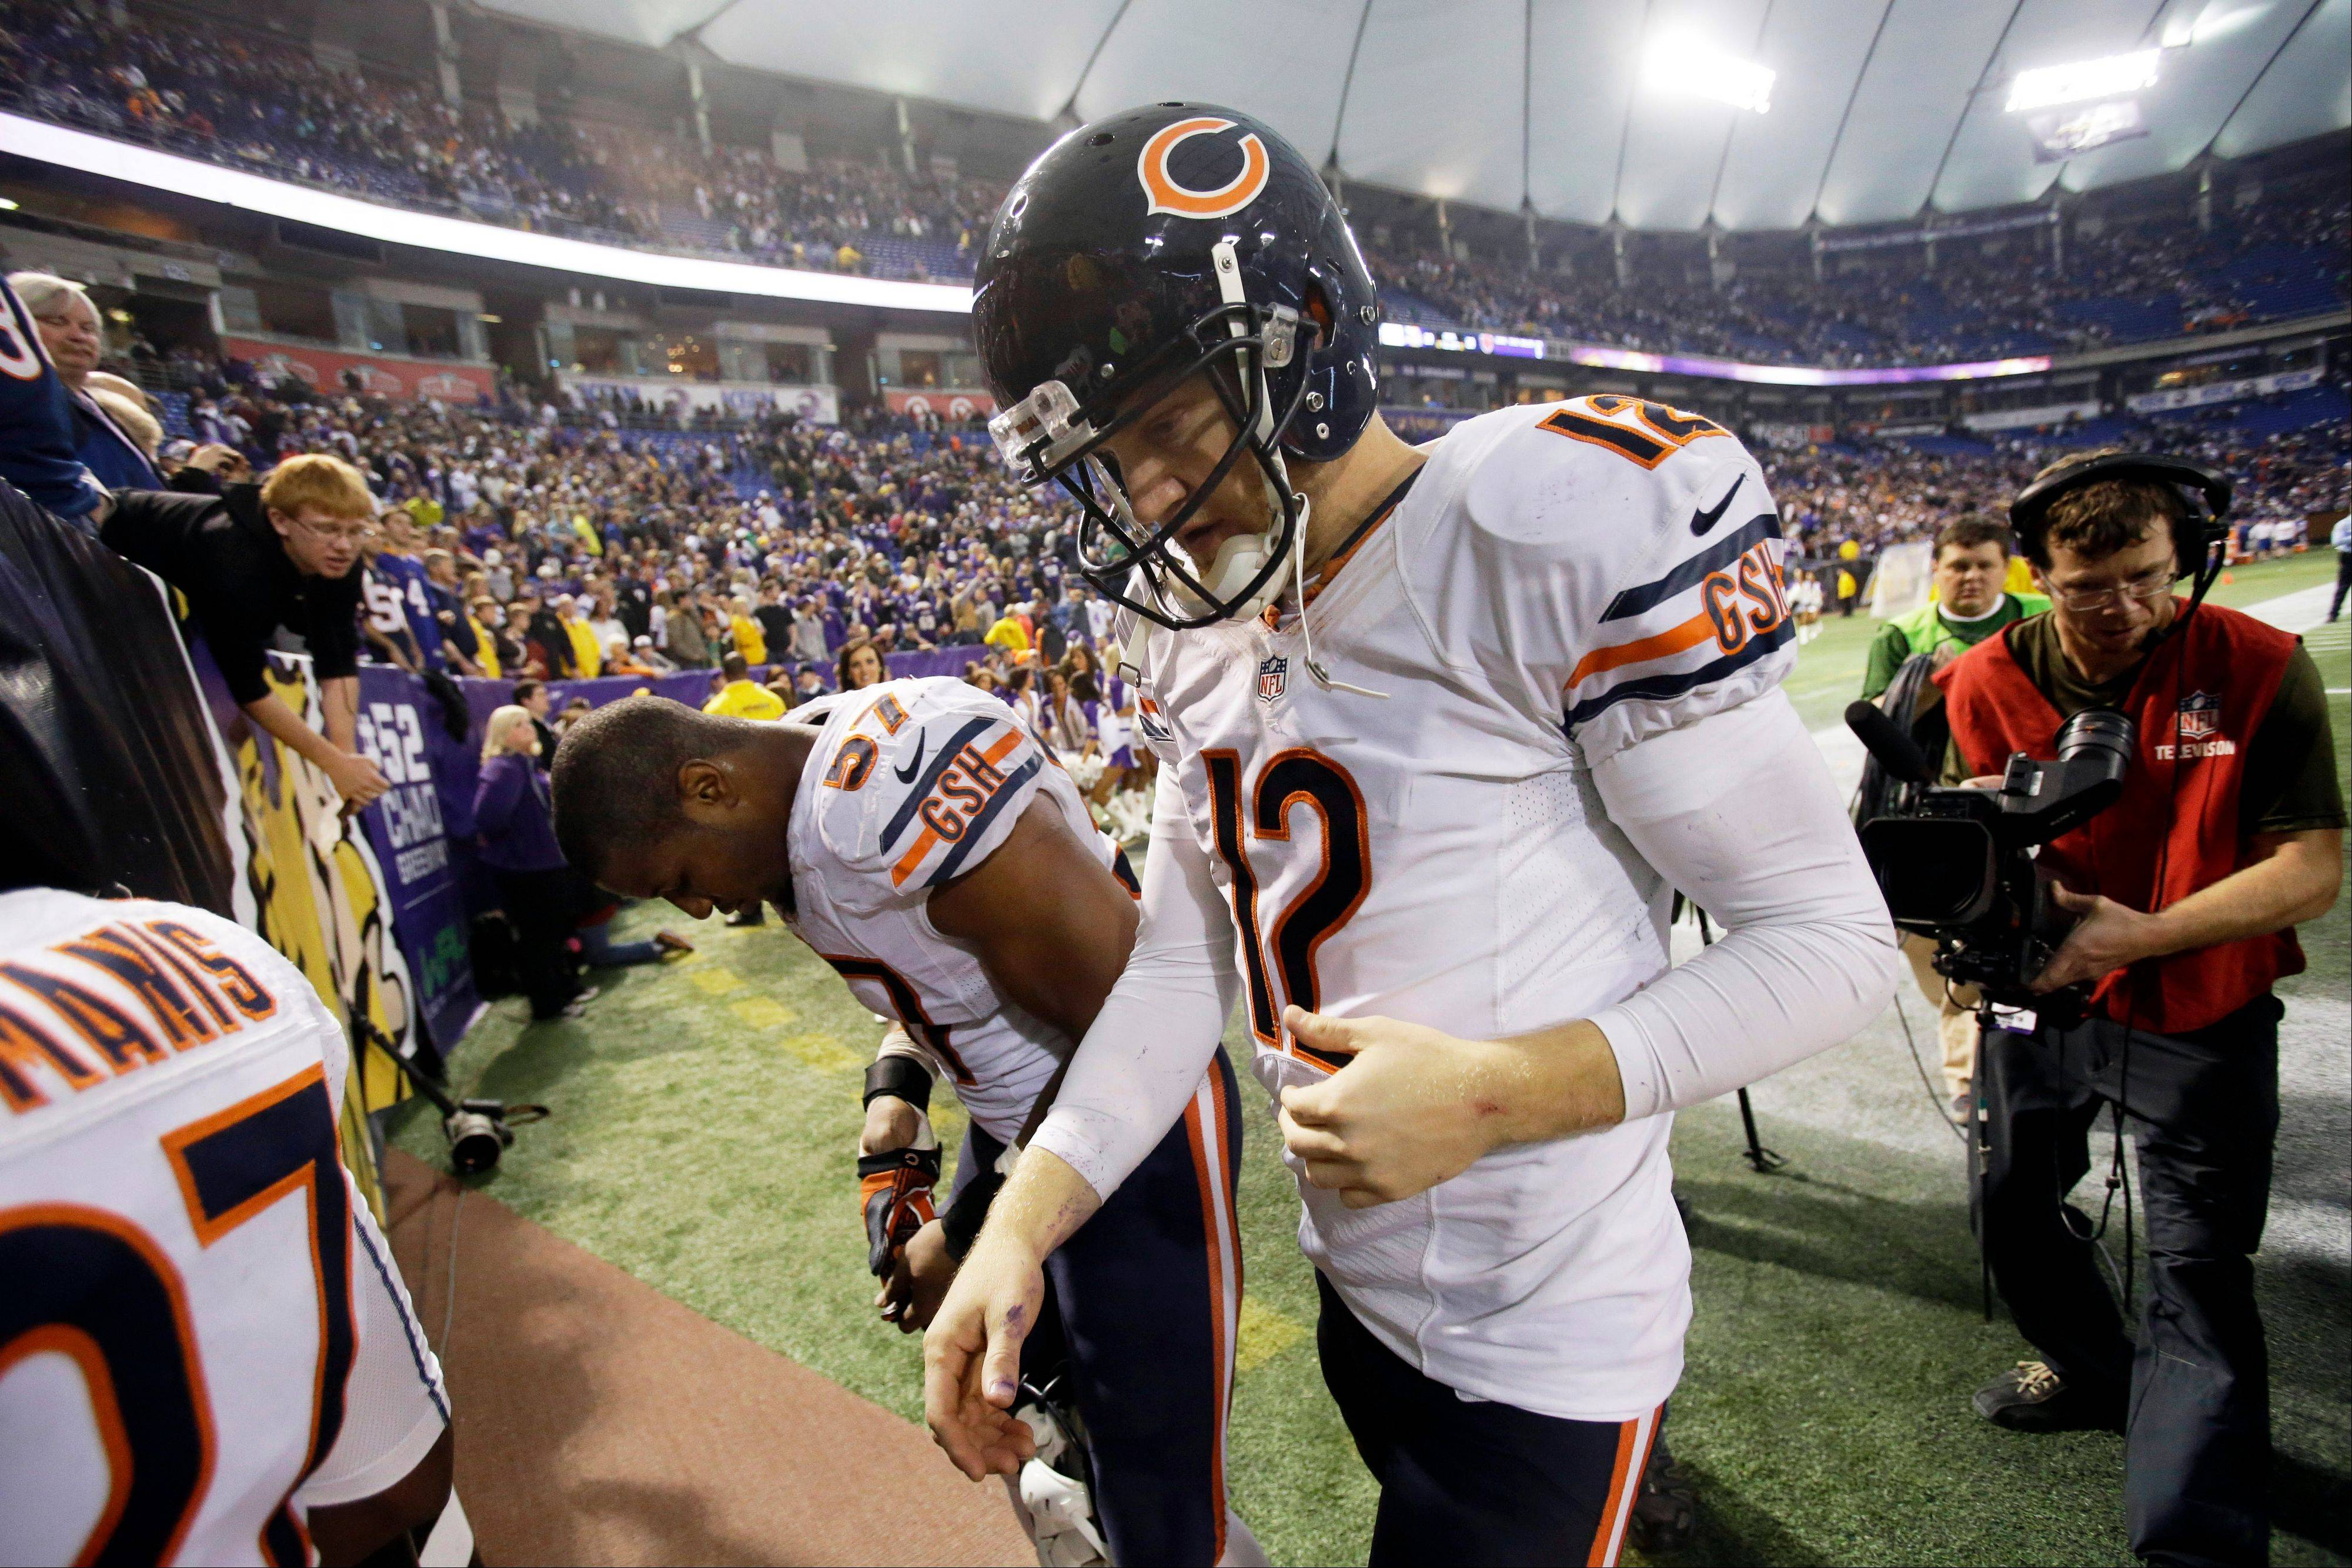 Quarterback Josh McCown walks off the field after Sunday's overtime loss to the Vikings evened the Bears' record at 6-6.